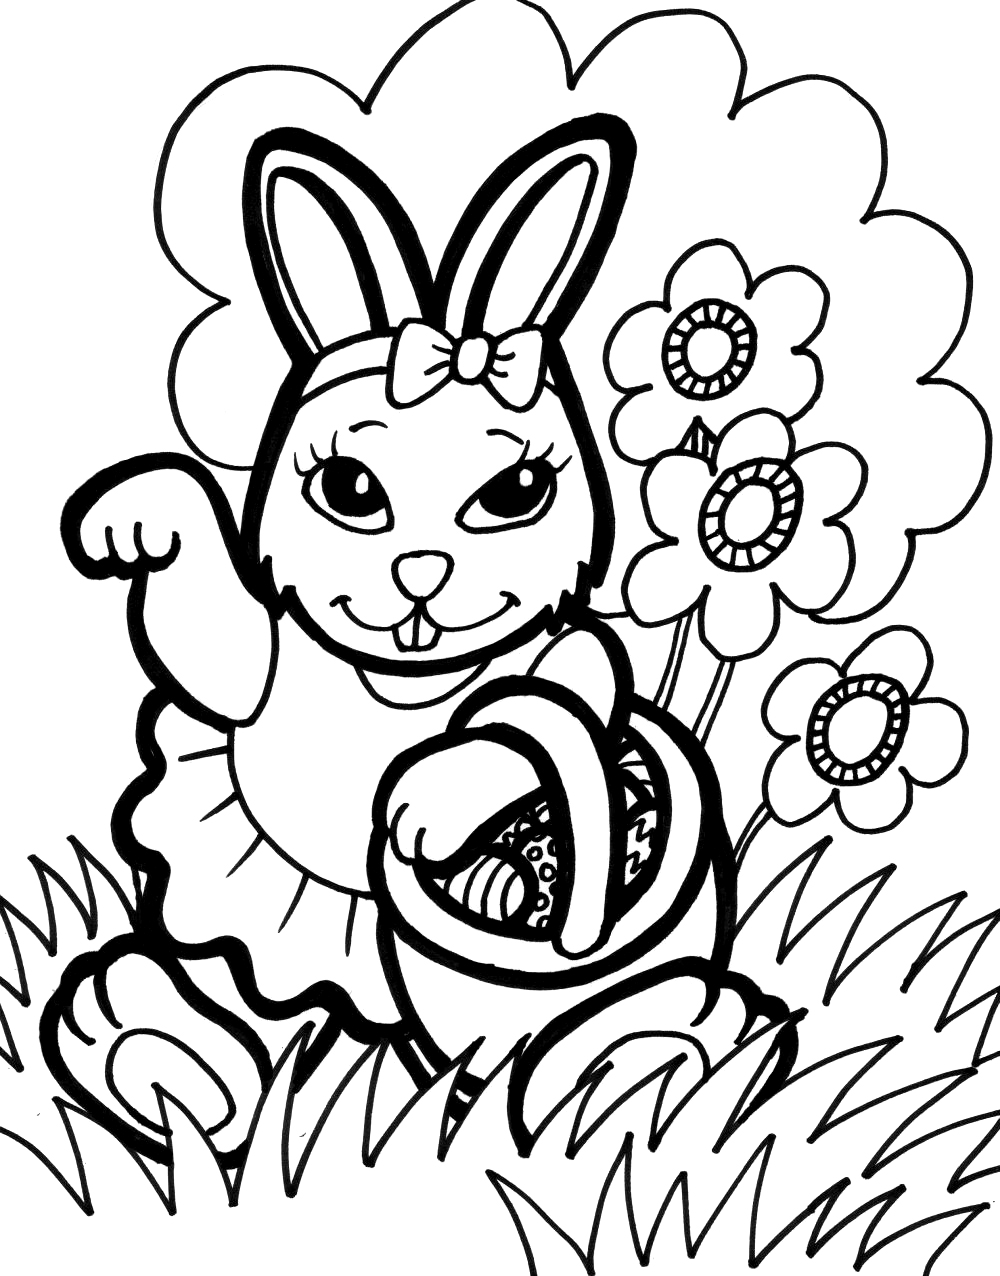 bunny coloring picture bunny coloring pages best coloring pages for kids coloring bunny picture